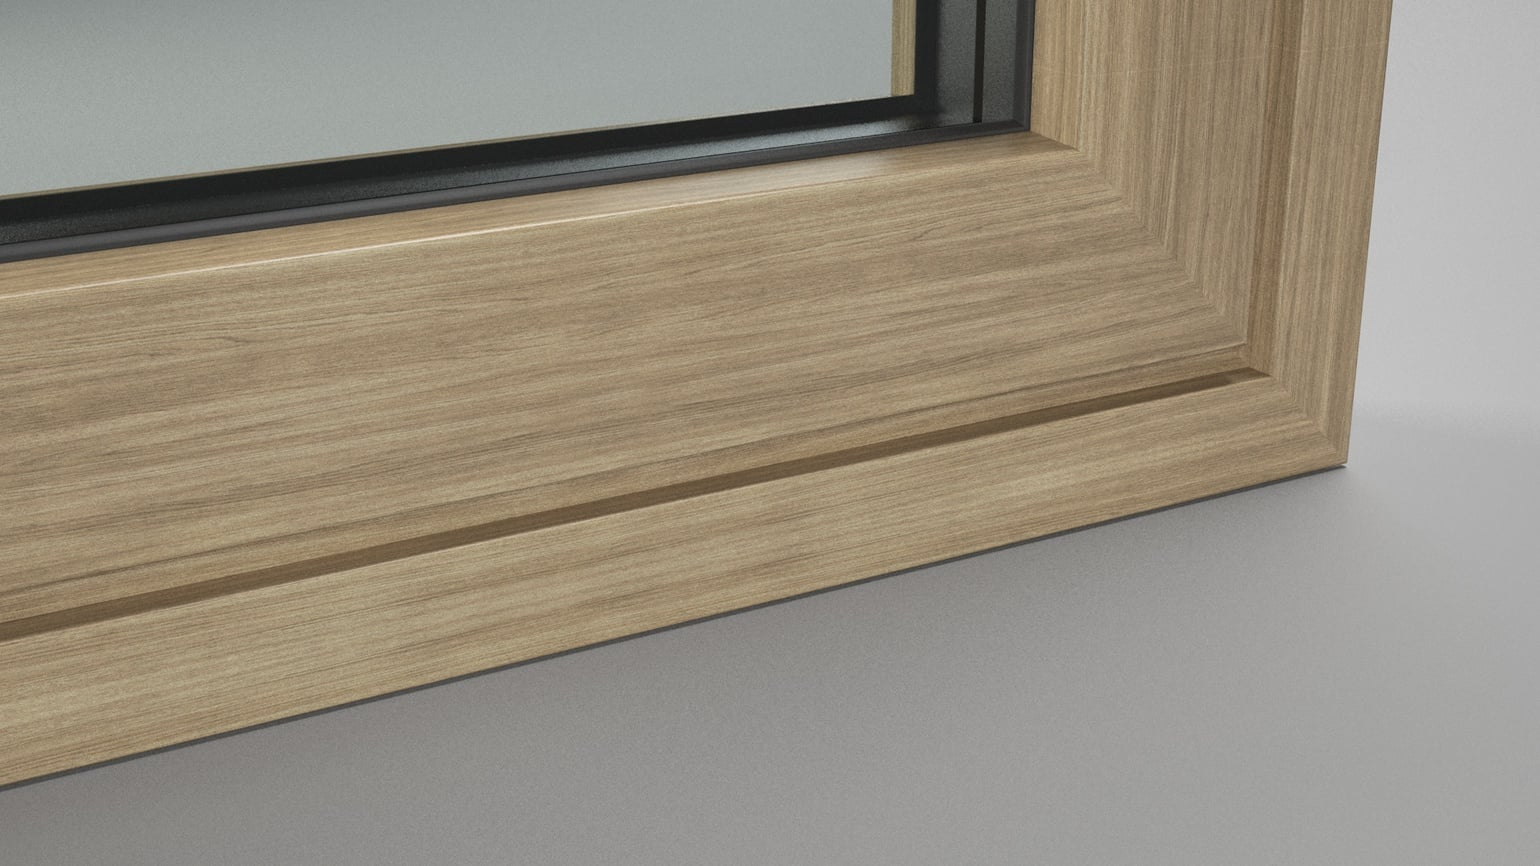 LX01 rovere naturale